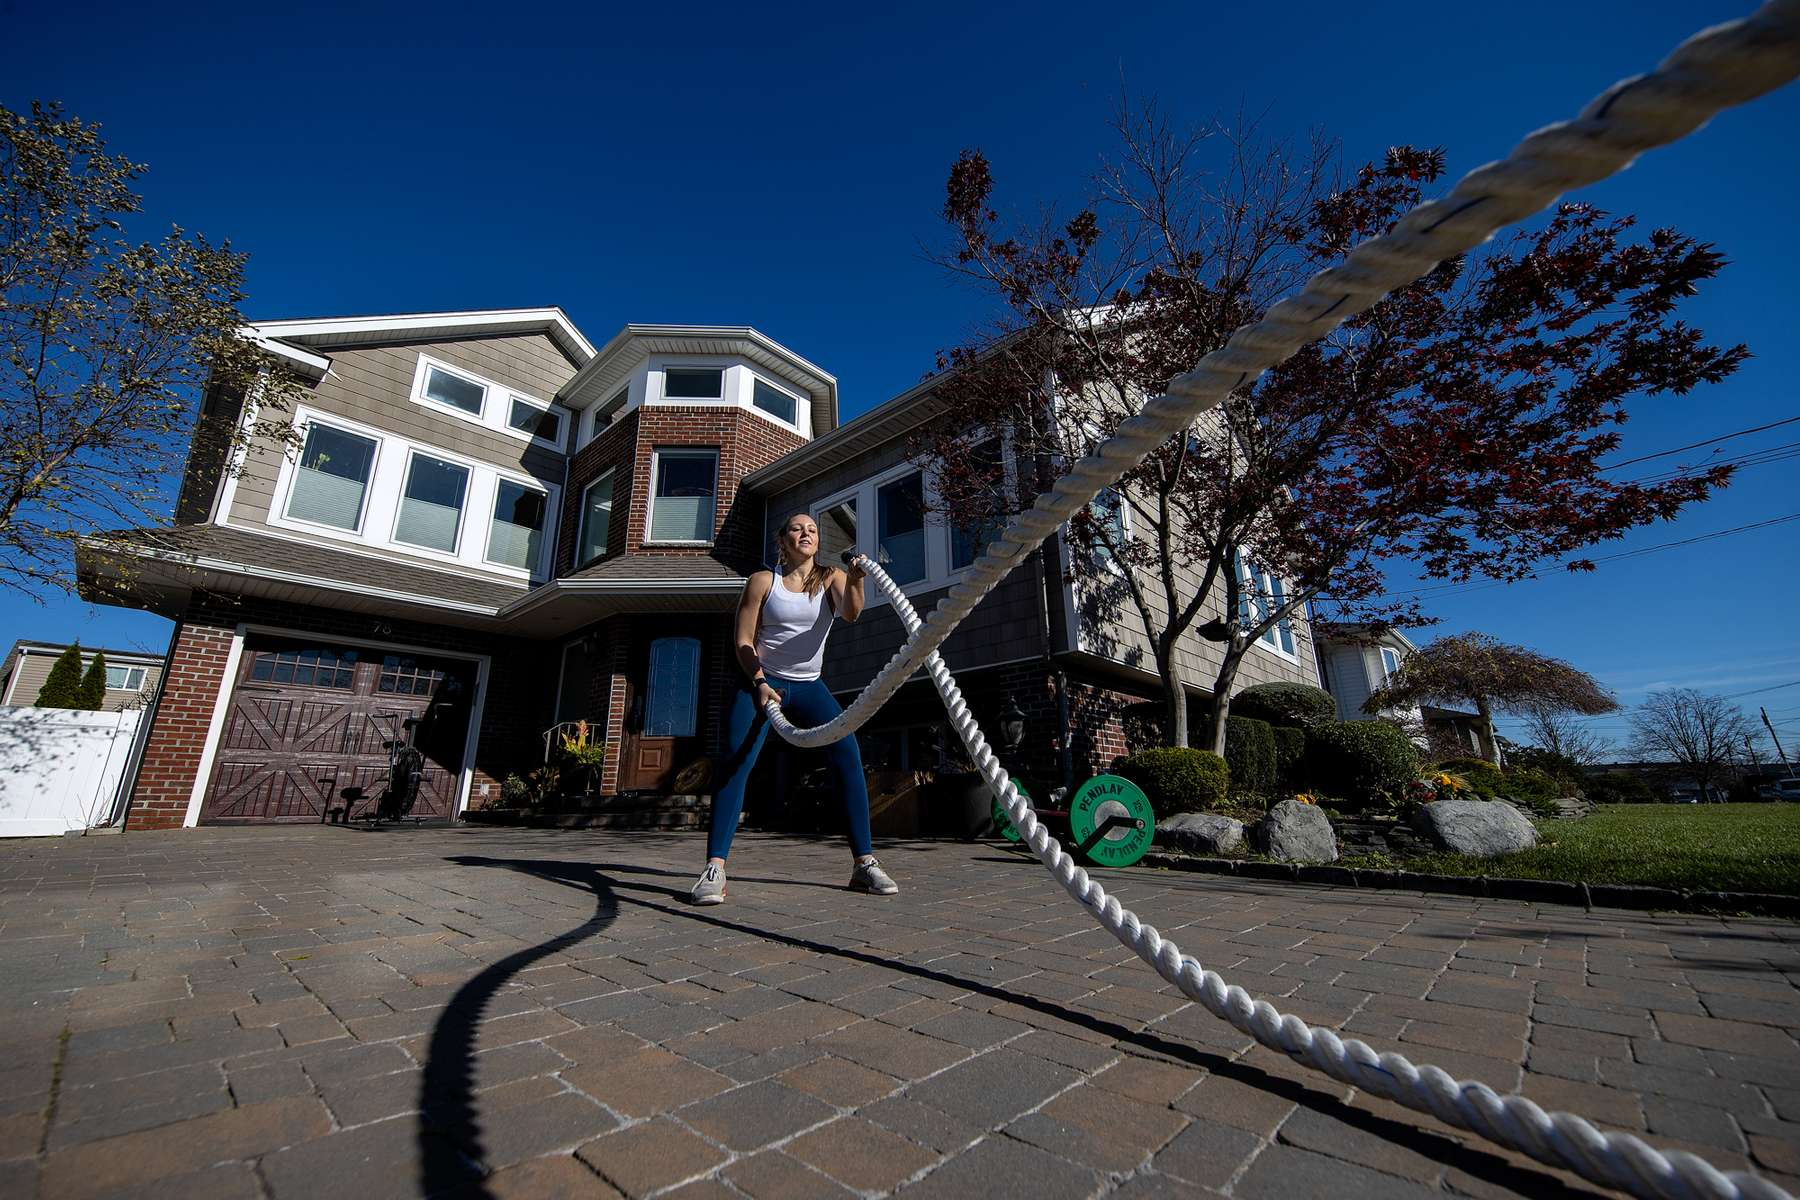 Alexa Hoovis exercises in her driveway with her virtual Fitness Trainer Dennis Guerrero on November 20th, 2020 in Oceanside, New York.  In March of 2014, Dennis Guerrero and his business partner opened a gym on Long Island. The pair shared a passion for fitness, a dream of creating a local community of like-minded people and a willingness to take a risk. Over the next six years, hundreds of members experienced and embraced a unique environment that fostered a palpable energy, helping athletes of all ages and abilities reach their potential.  The gym became a place to share achievements, work through losses and overcome illness. But like so many other businesses, it seemingly had no way of overcoming the financial impact and ongoing uncertainty of a global pandemic. With the arrival of Covid-19, the gym shut its doors back in March, with no idea when it would reopen. The owners, though, were far from done. They lent out every piece of equipment they owned to the gym's members, continued to pay their staff and worked to set up outdoor classes in hopes of keeping their membership active and healthy. As the shutdown stretched on, it became clear that the physical gym was closed for good.  They have since reinvented themselves and are now called Life Outside the Box.  Their business model has changed drastically, and all their workouts have gone virtual.  The workouts are conducted by a small group of fitness trainers led by Guerrero.  The members pay a monthly fee and can take live Zoom fitness classes.  They are coached by the virtual trainers in real time.  More and more people have reconstructed their garages, spare rooms, backyards, and basements into home gyms since the COVID-19 pandemic hit the United States.